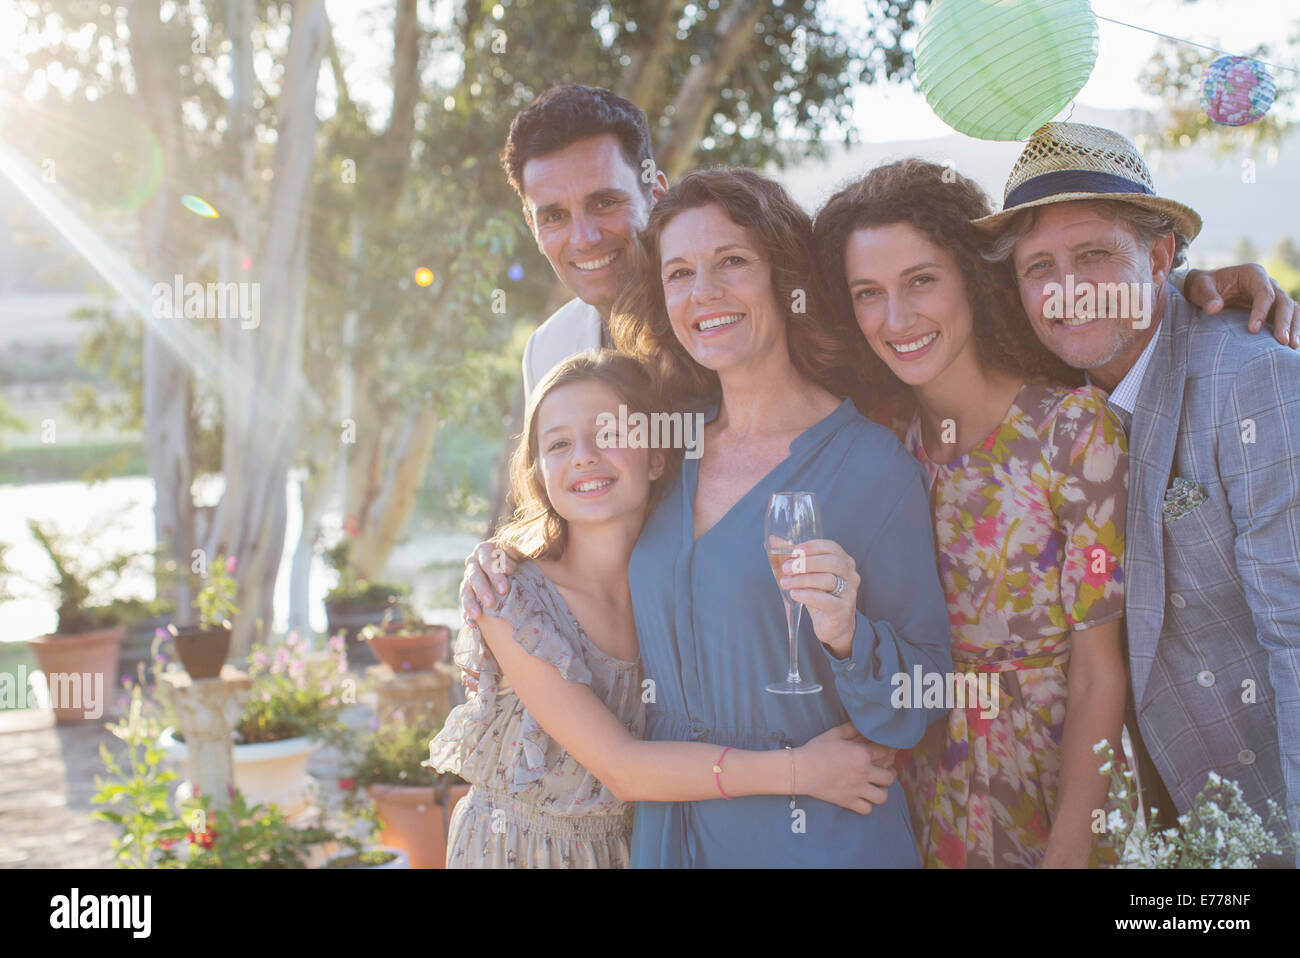 Family hugging outdoors on sunny day - Stock Image